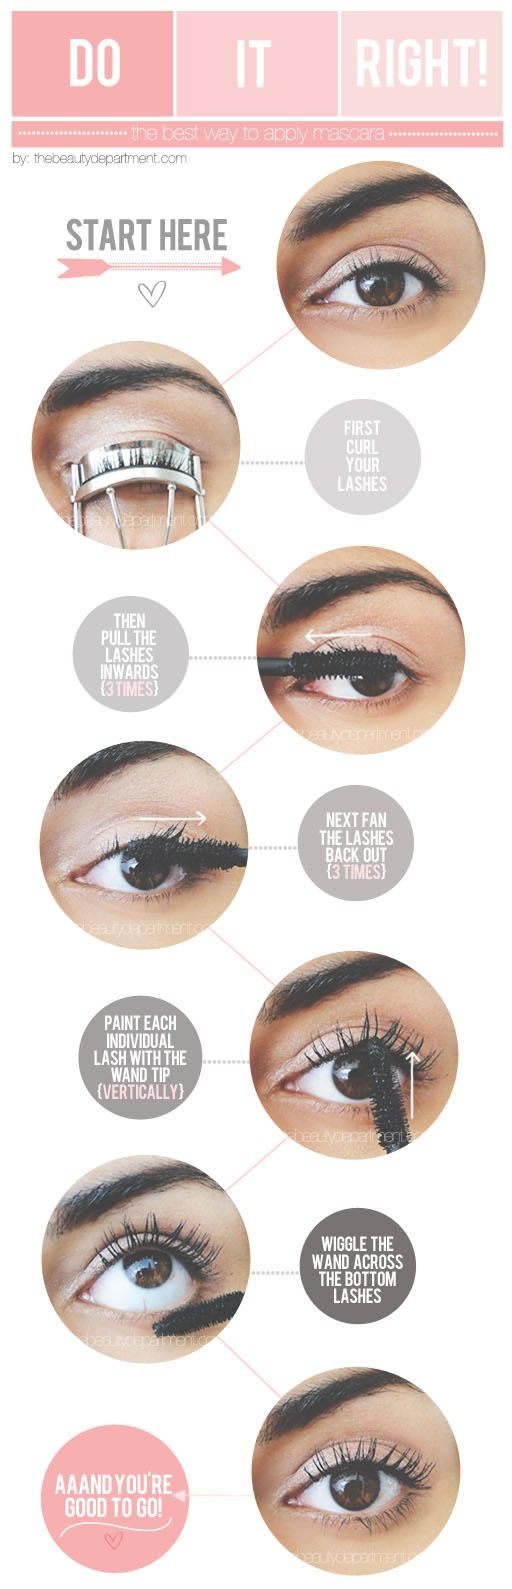 How To Apply Mascara To Make Lashes Fuller And Longer Looking